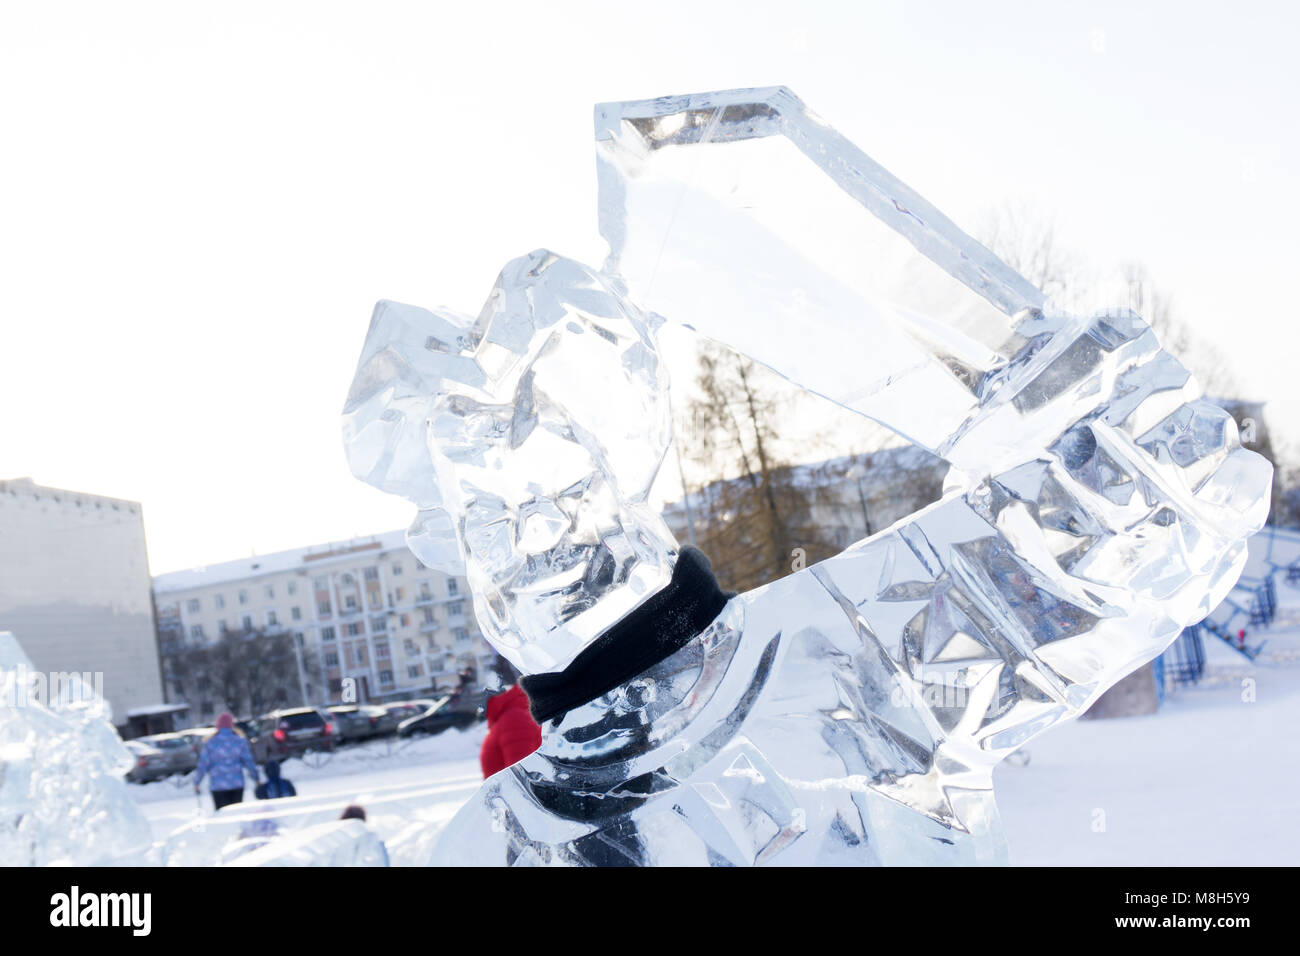 Ice Angel Sculpture Stock Photos & Ice Angel Sculpture Stock Images ...